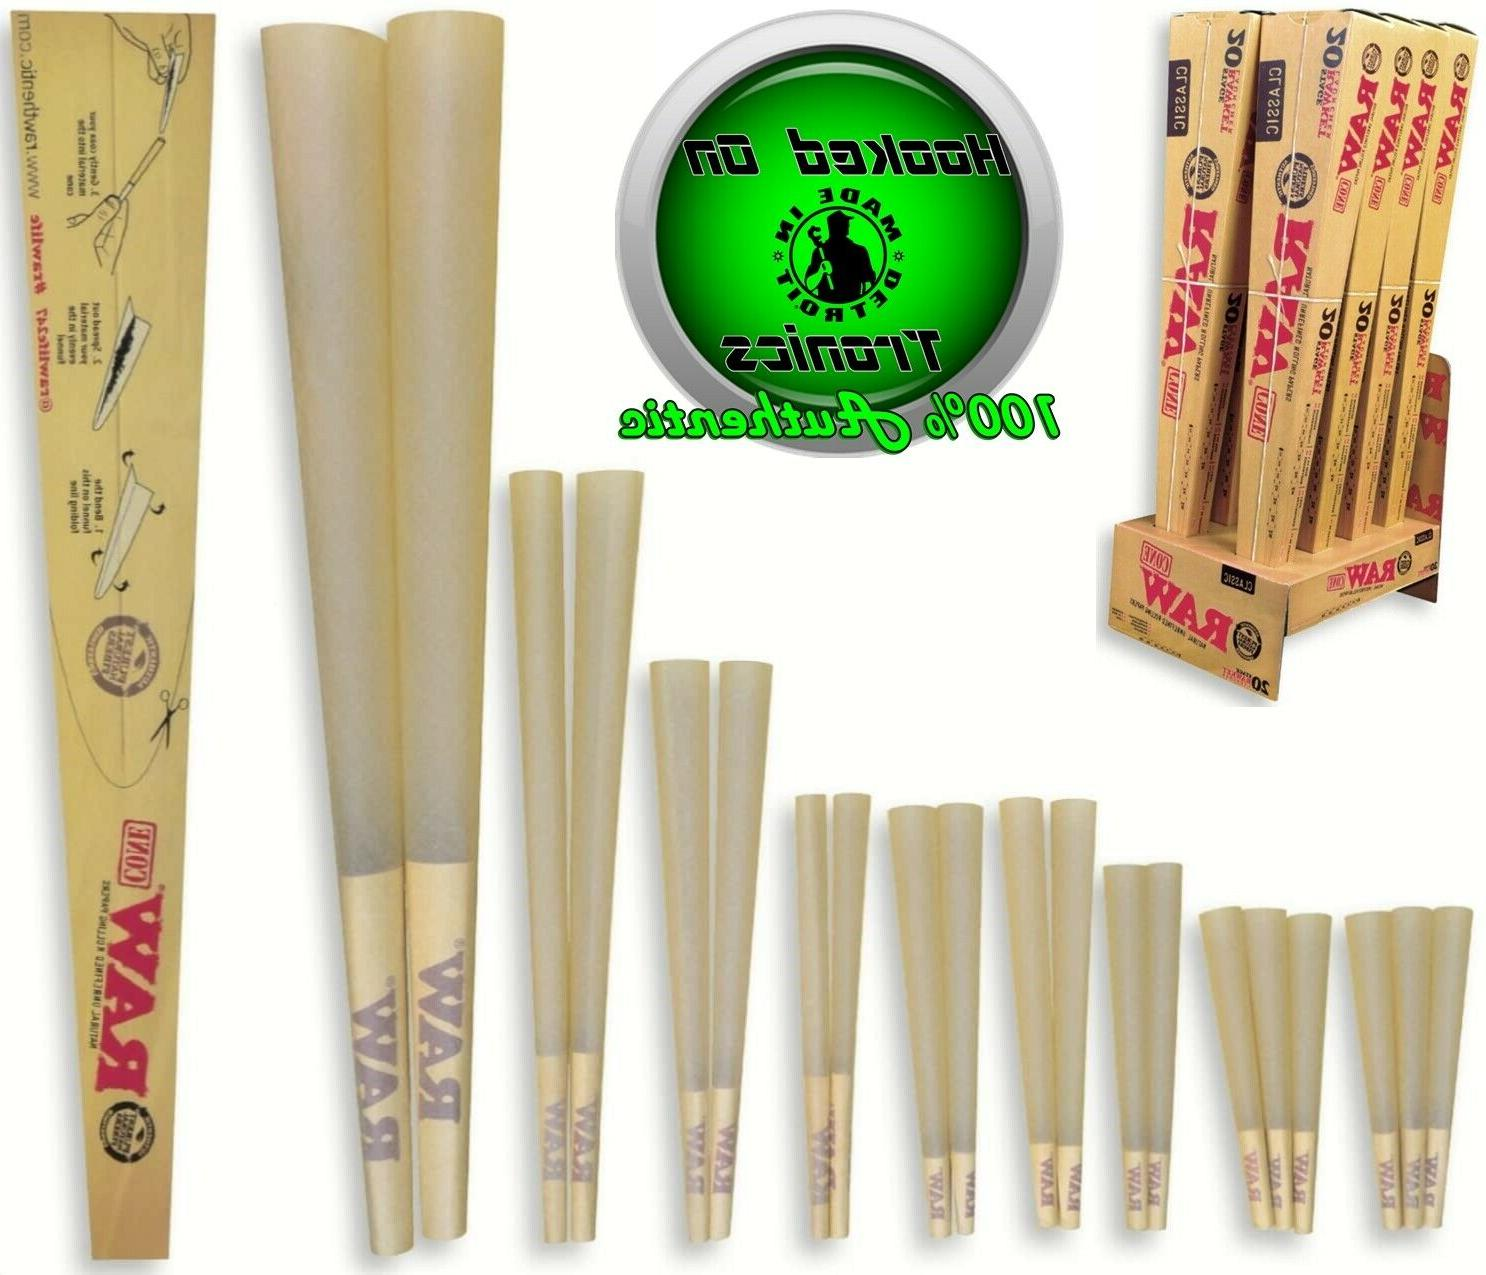 Raw Launcher - assorted Sized cones USA